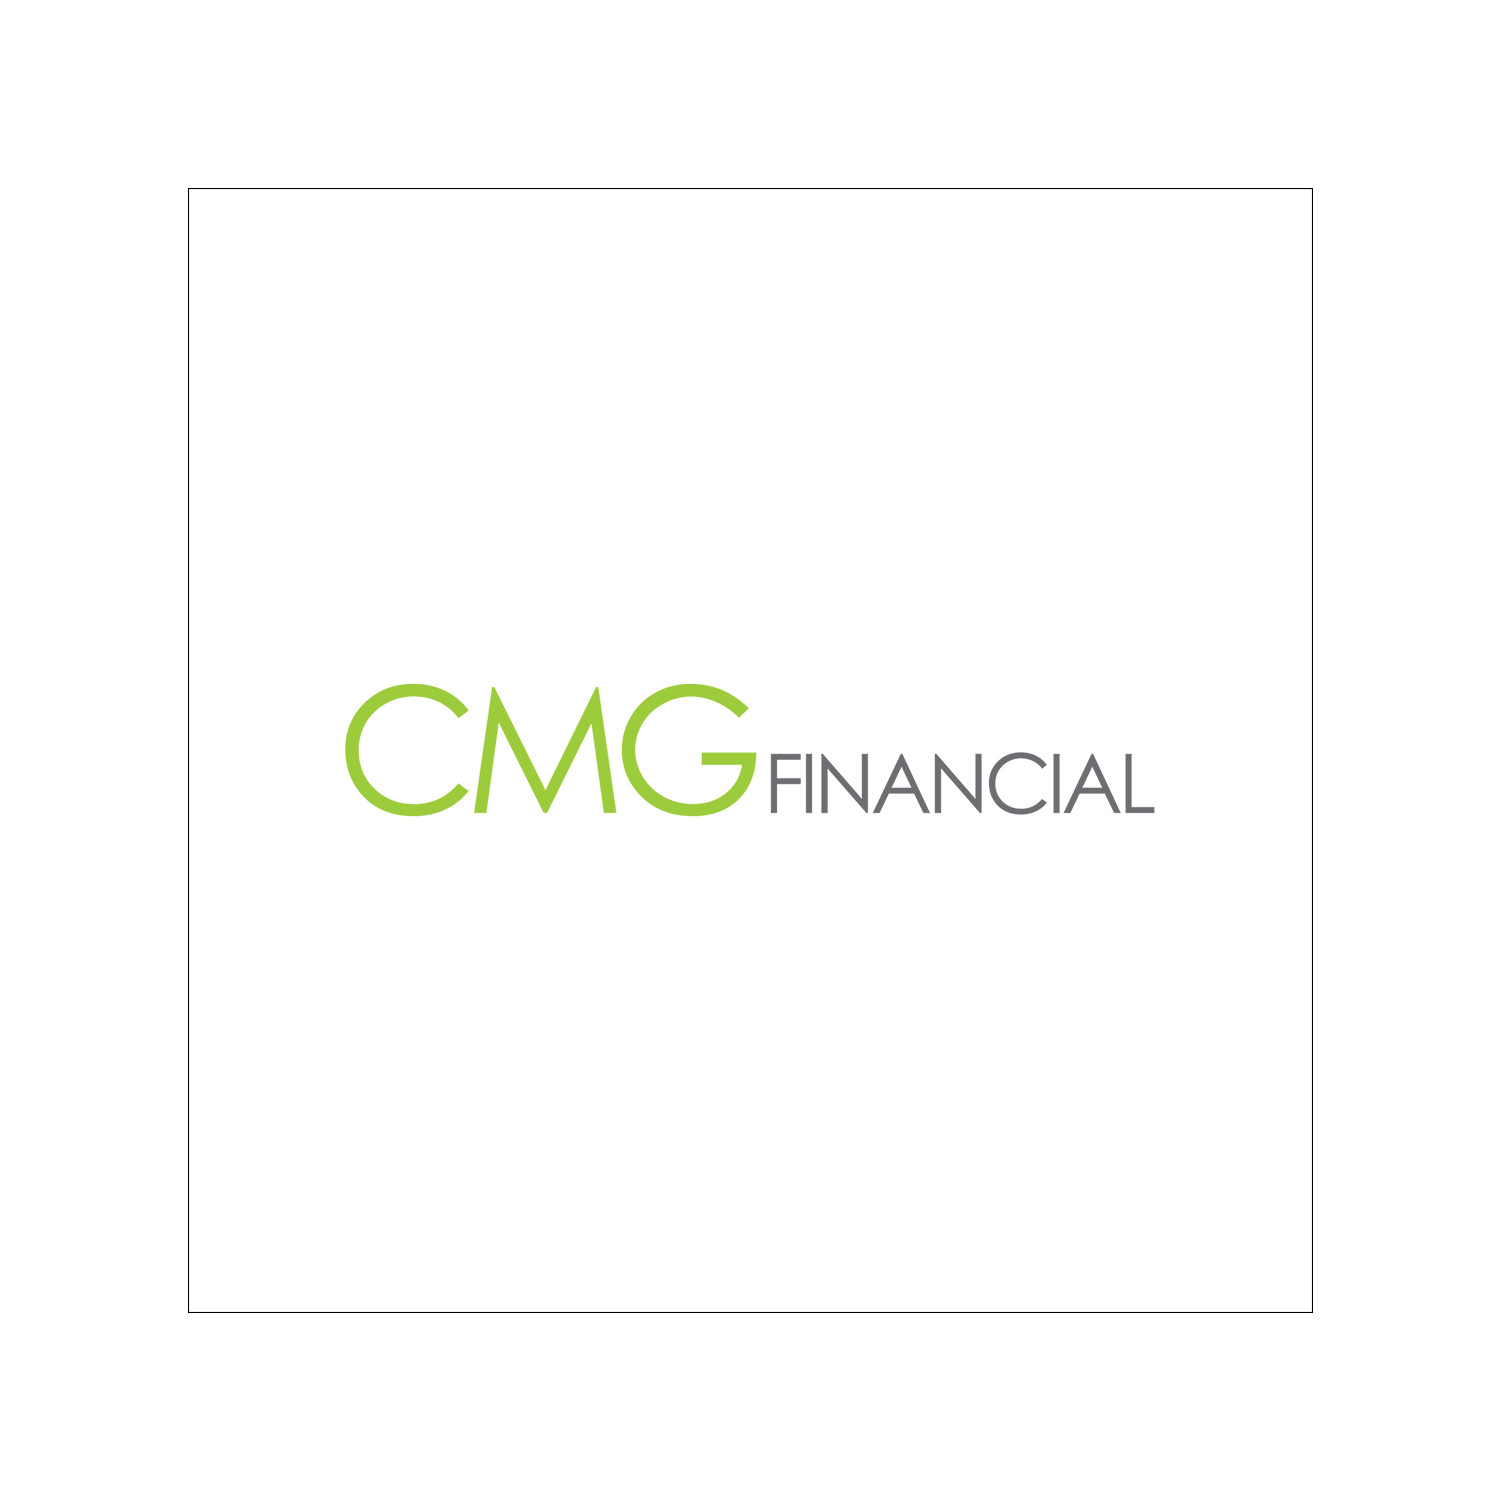 CMG Financial